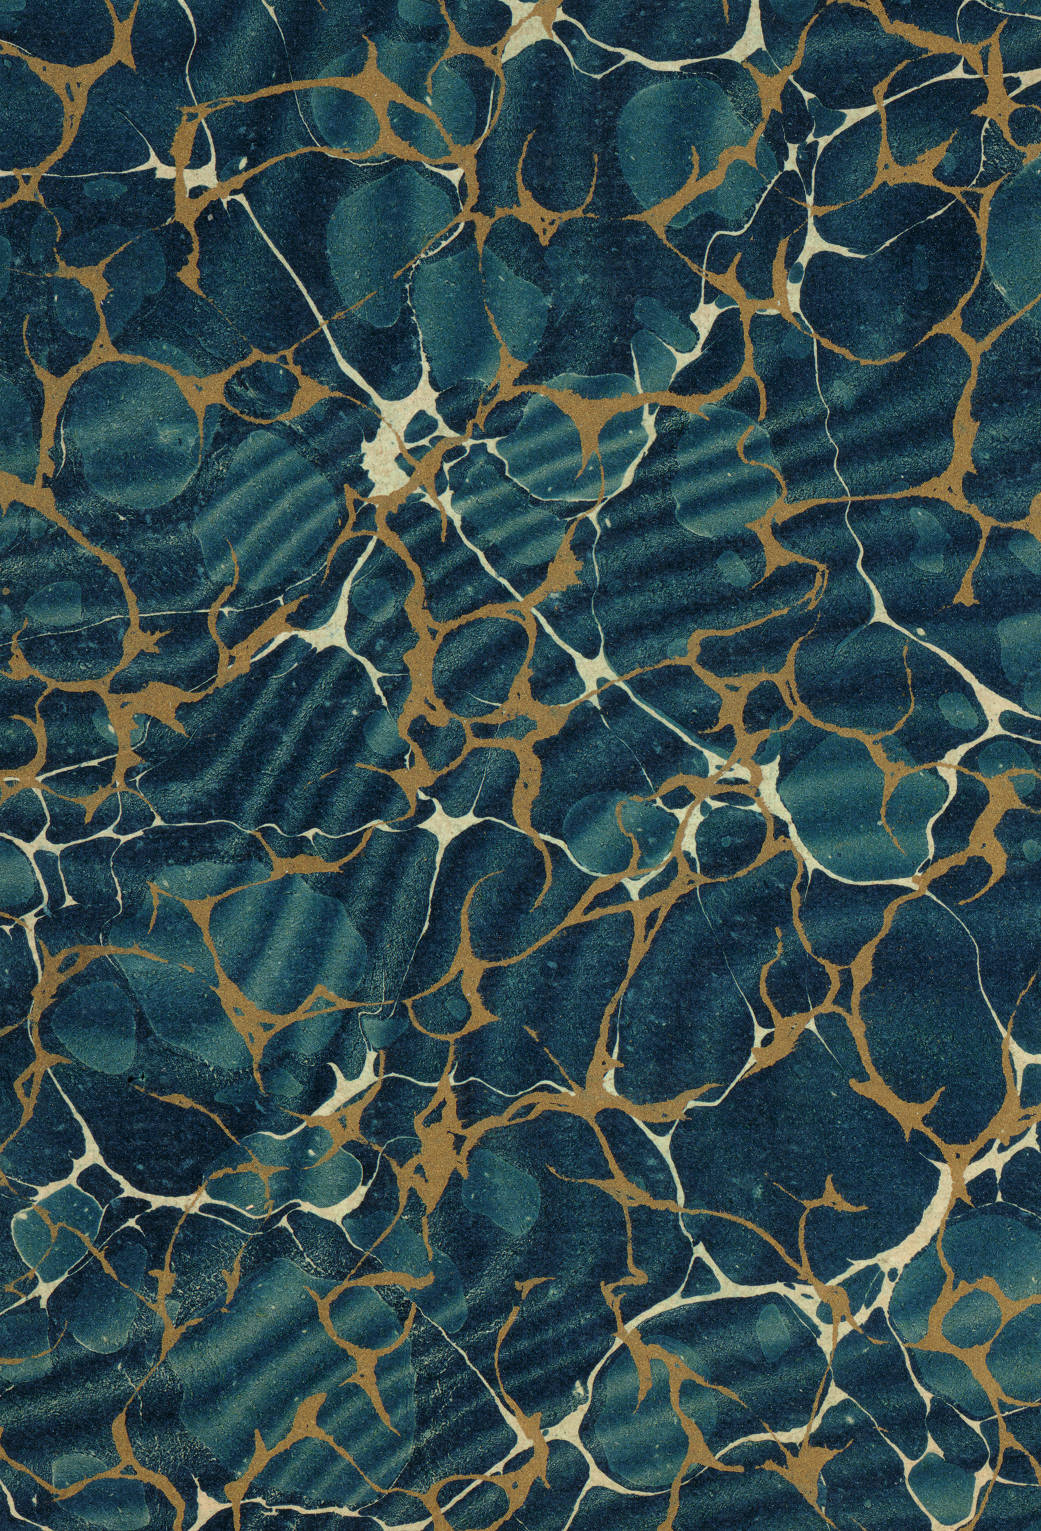 marbled paper Paper marbling media in category marbled paper the following 57 files are in this category, out of 57 total -a book of french-arabic conversations.